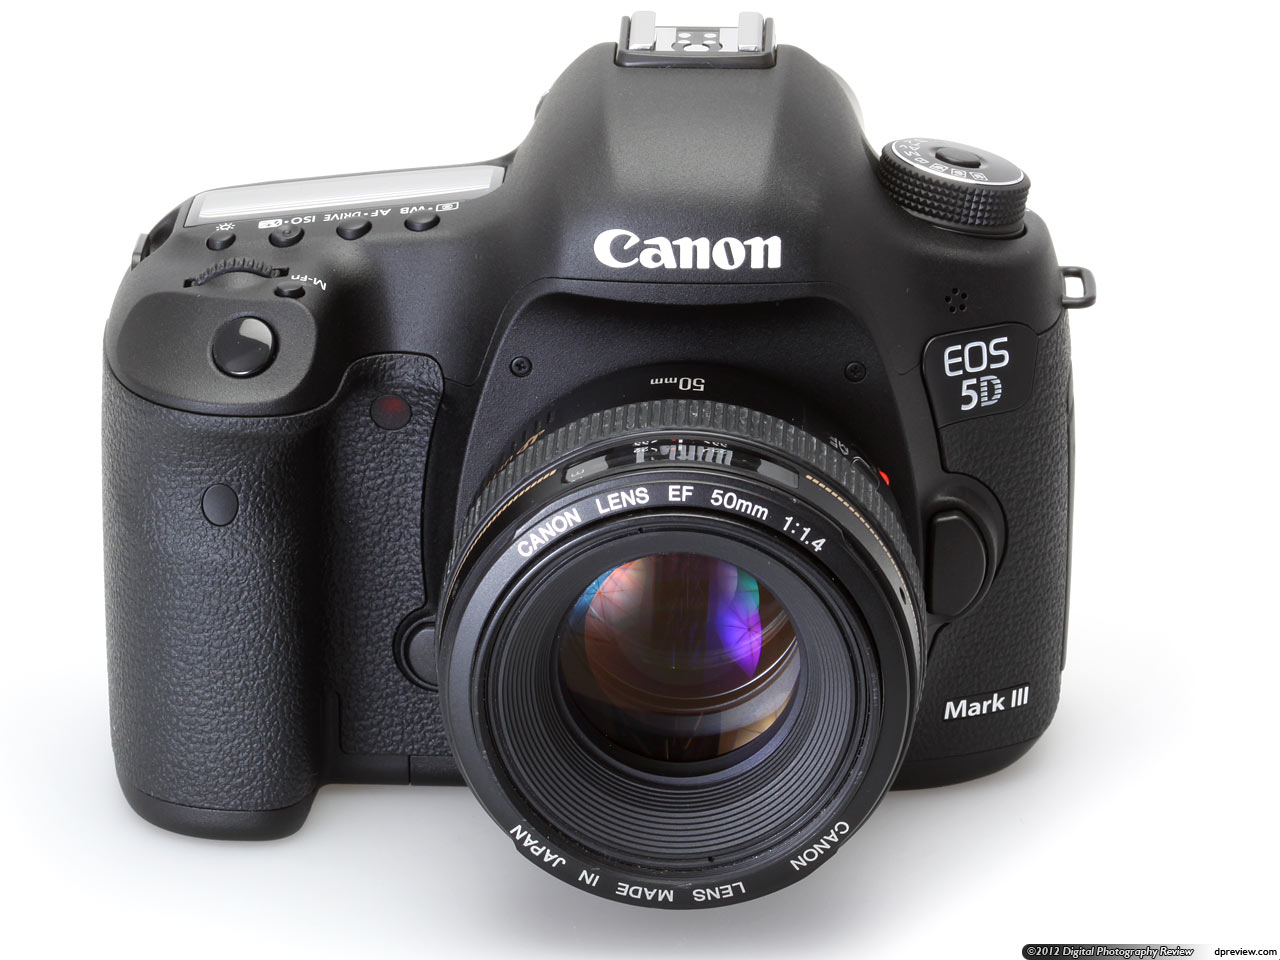 canon eos 5d mark iii review digital photography review rh dpreview com canon 5d mark 3 user manual New Canon 5D III